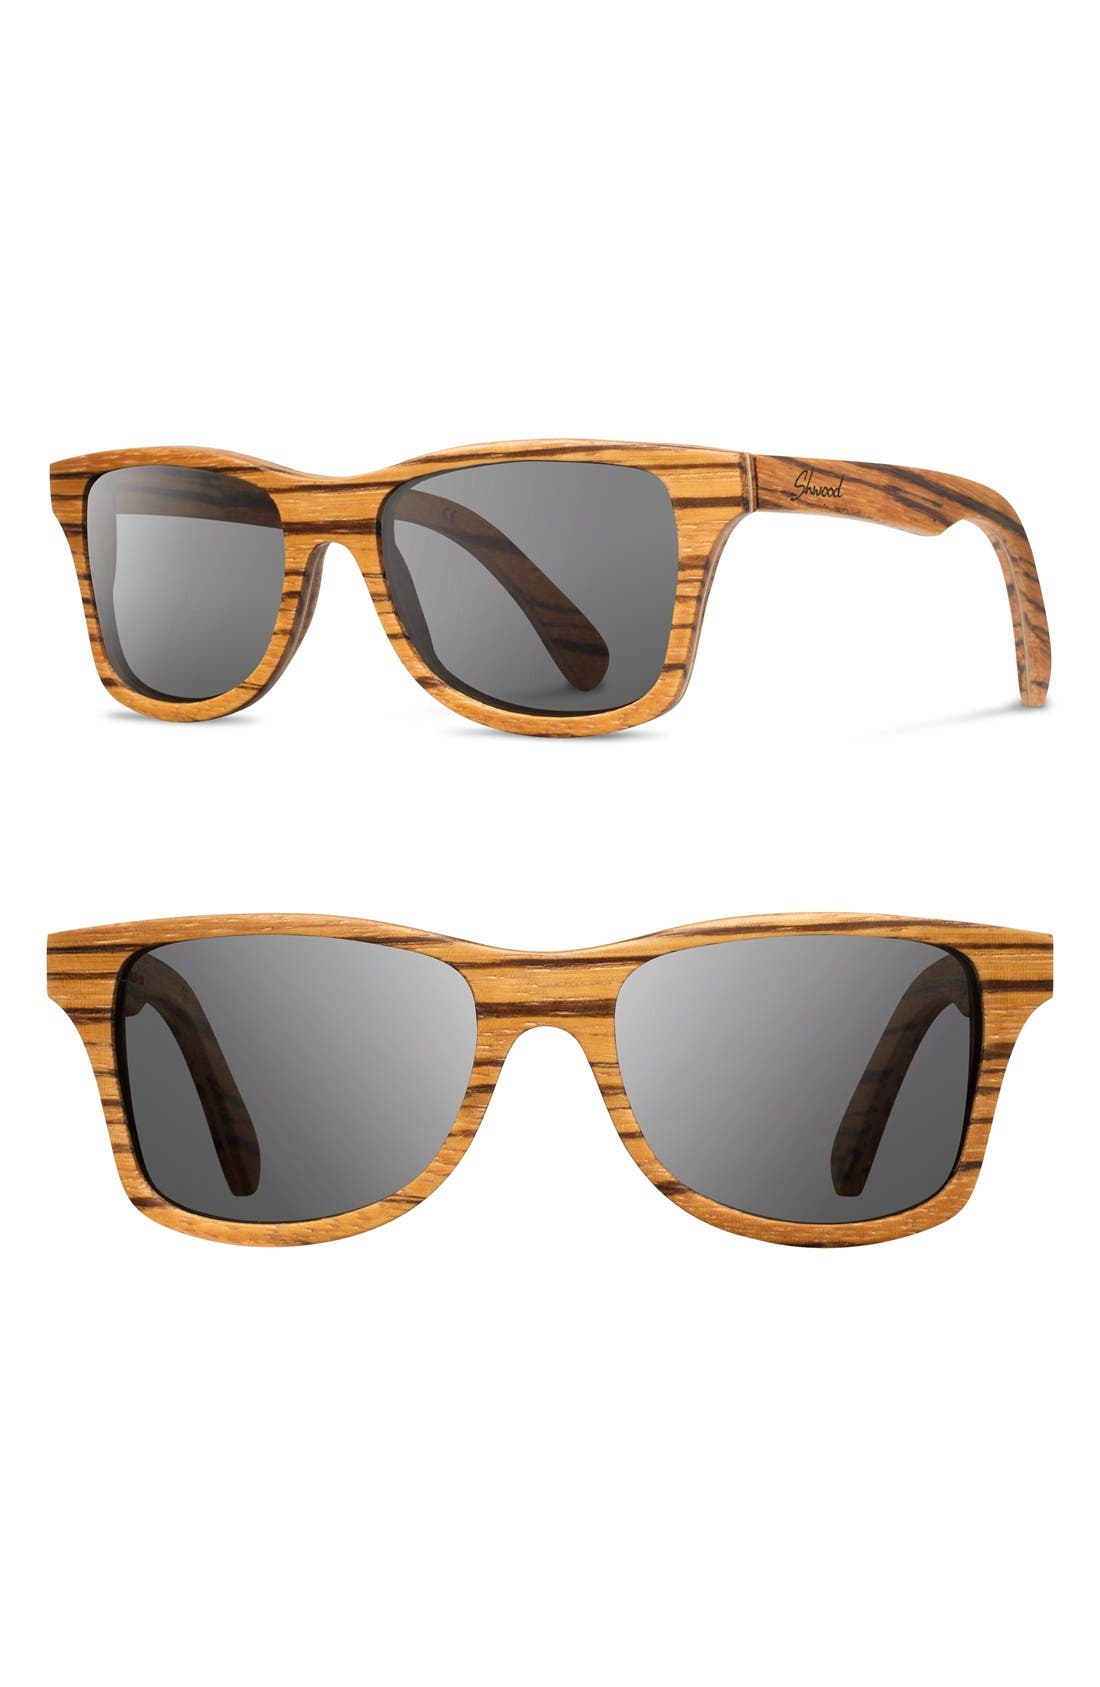 'Canby' 54mm Wood Sunglasses,                             Main thumbnail 1, color,                             200